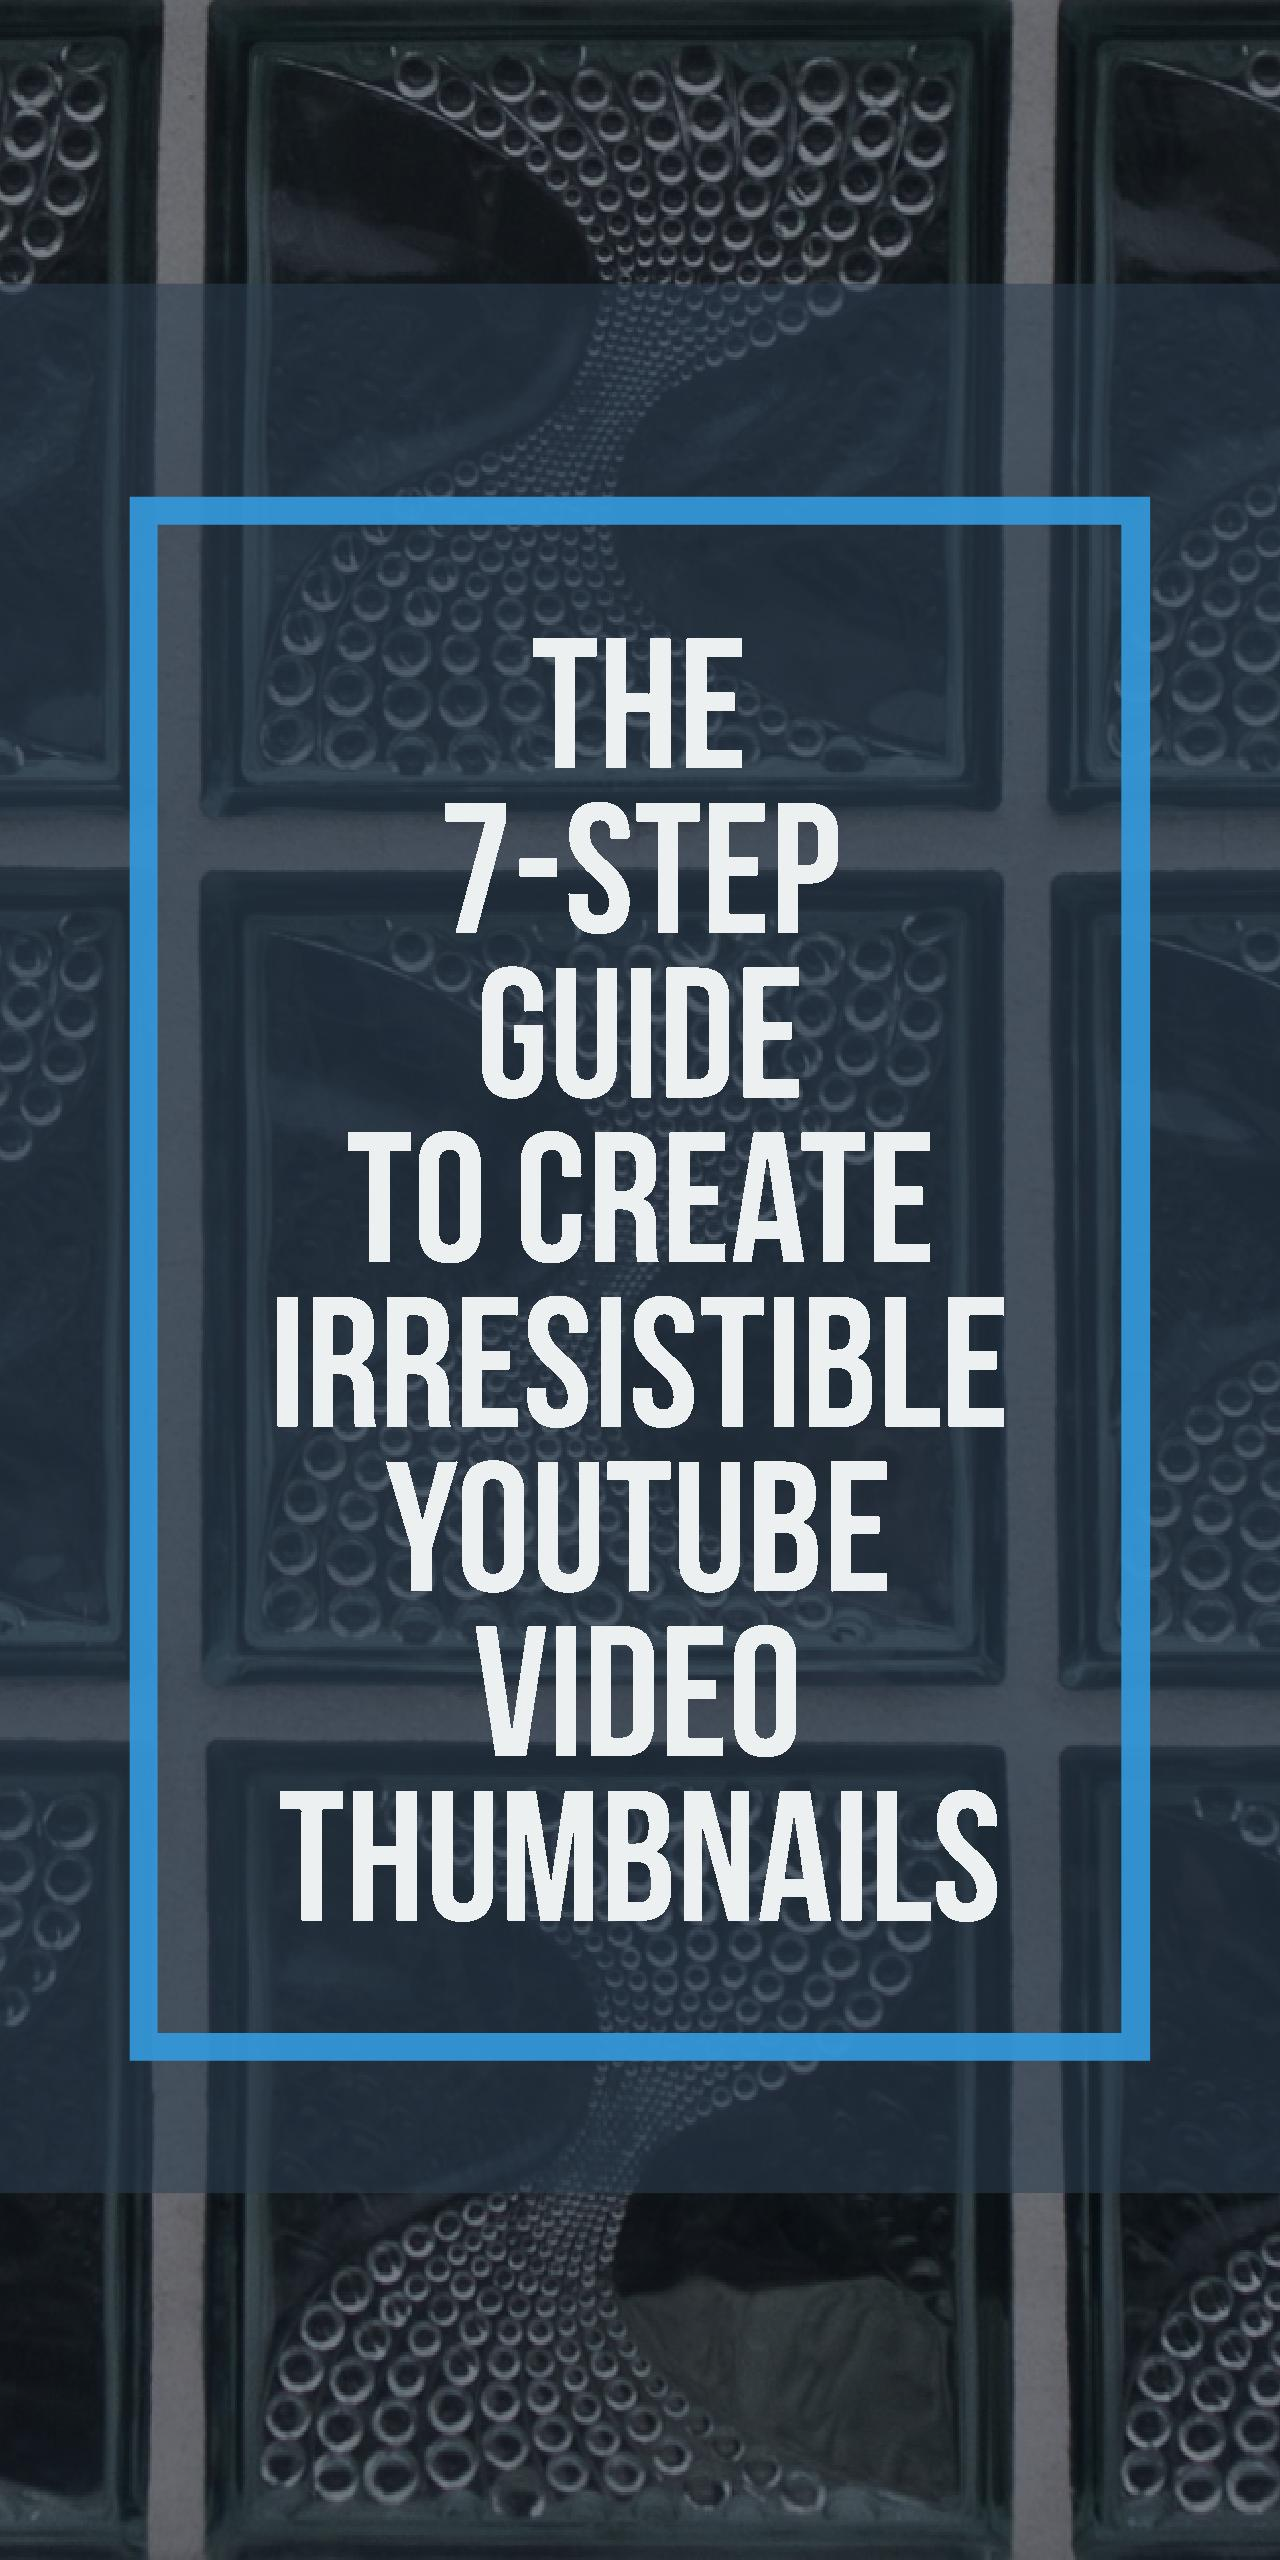 The 7-Step Guide to Create Irresistible YouTube Video Thumbnails